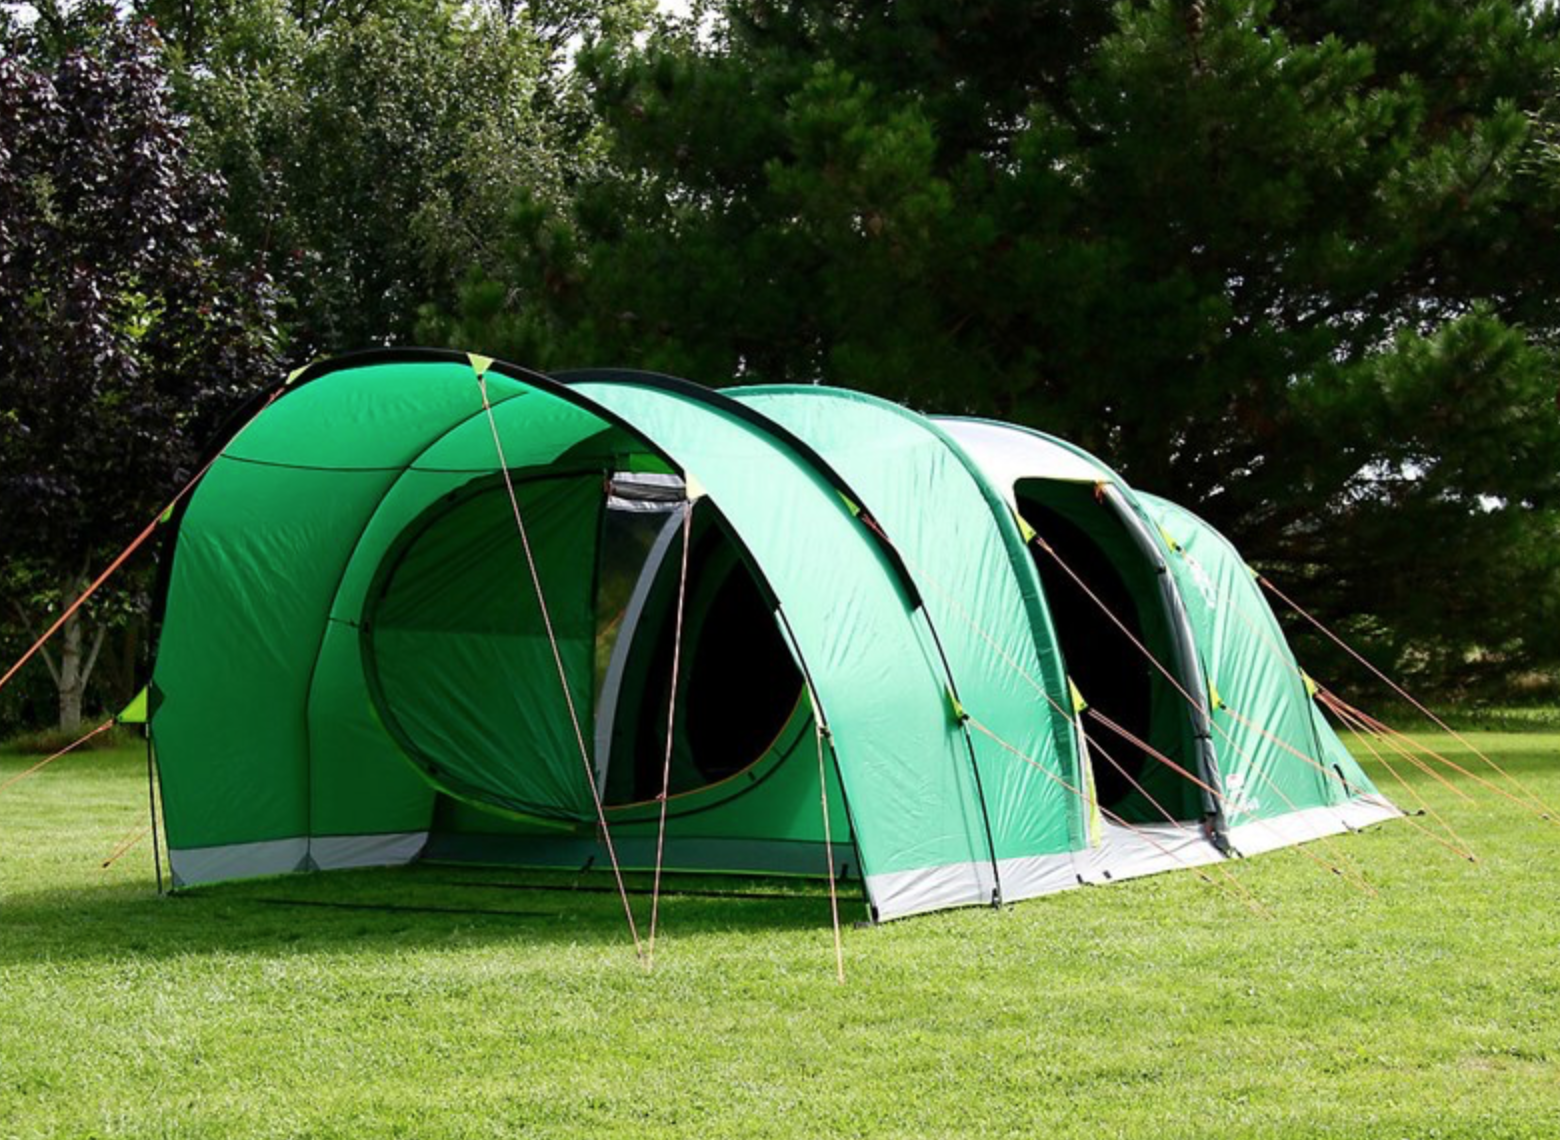 Family Camping Plans for 2019 - Air Tent